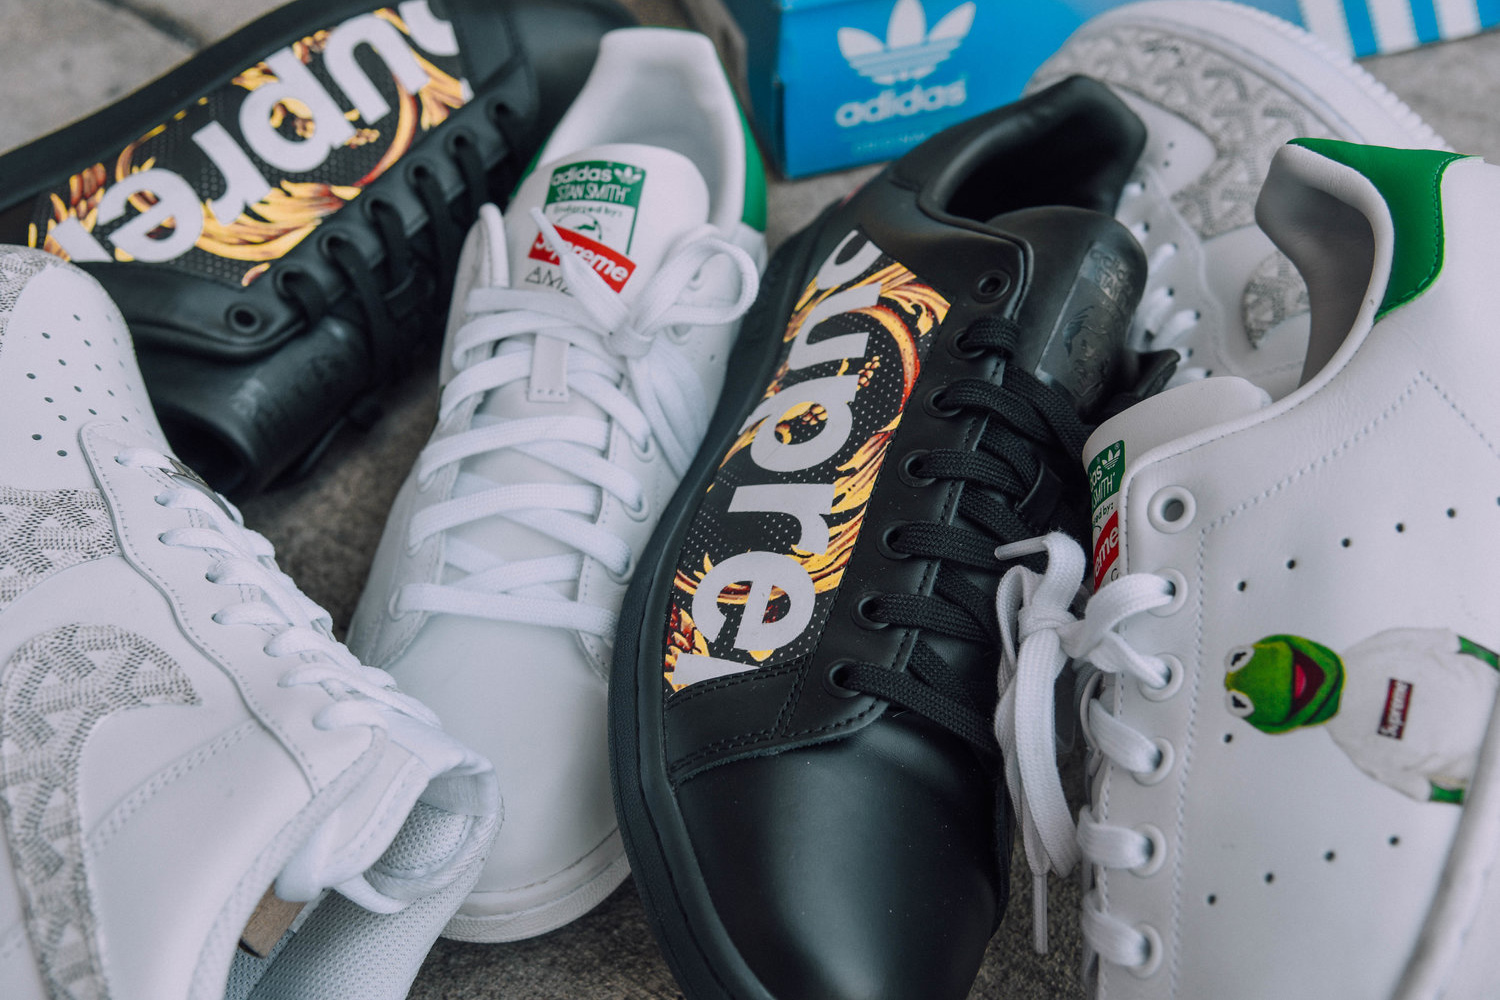 Les Stan Smith et Air Force 1 revisitées en Suprême et Goyard par AMAC Customs